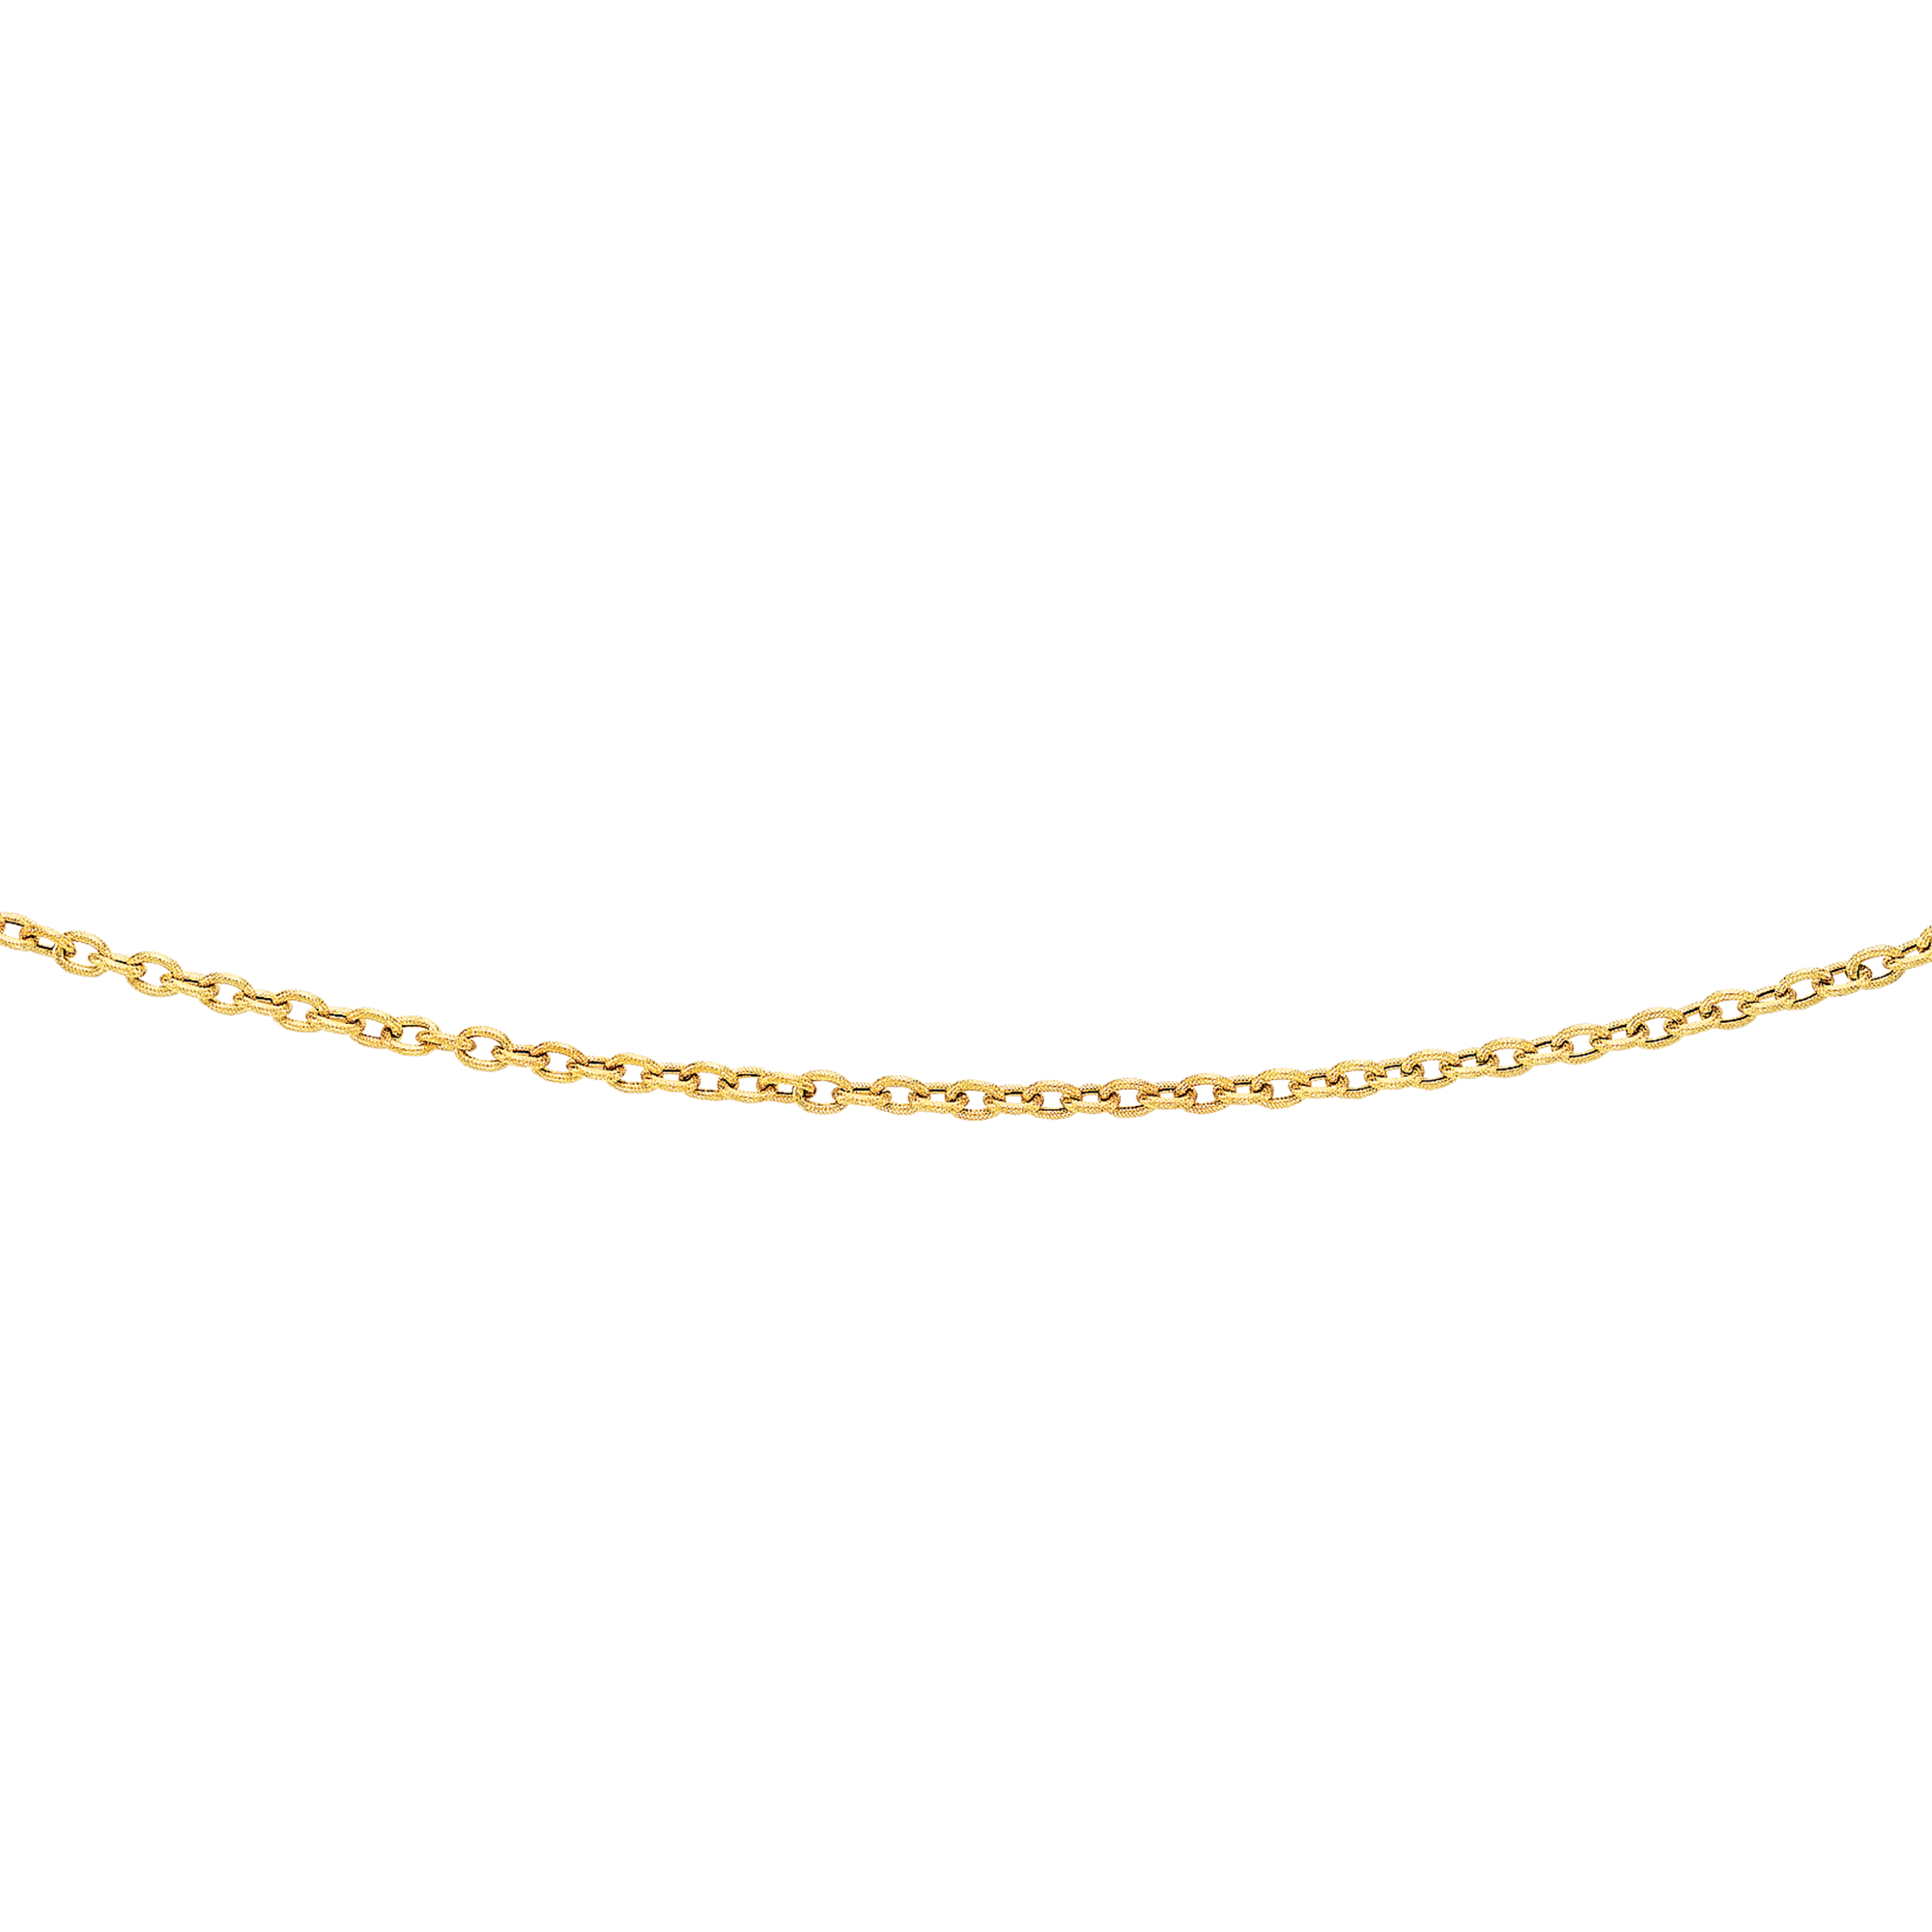 LUXURMAN Solid 14k Gold Cable Chain For Women Textured Link 3.5mm Wide Yellow Image